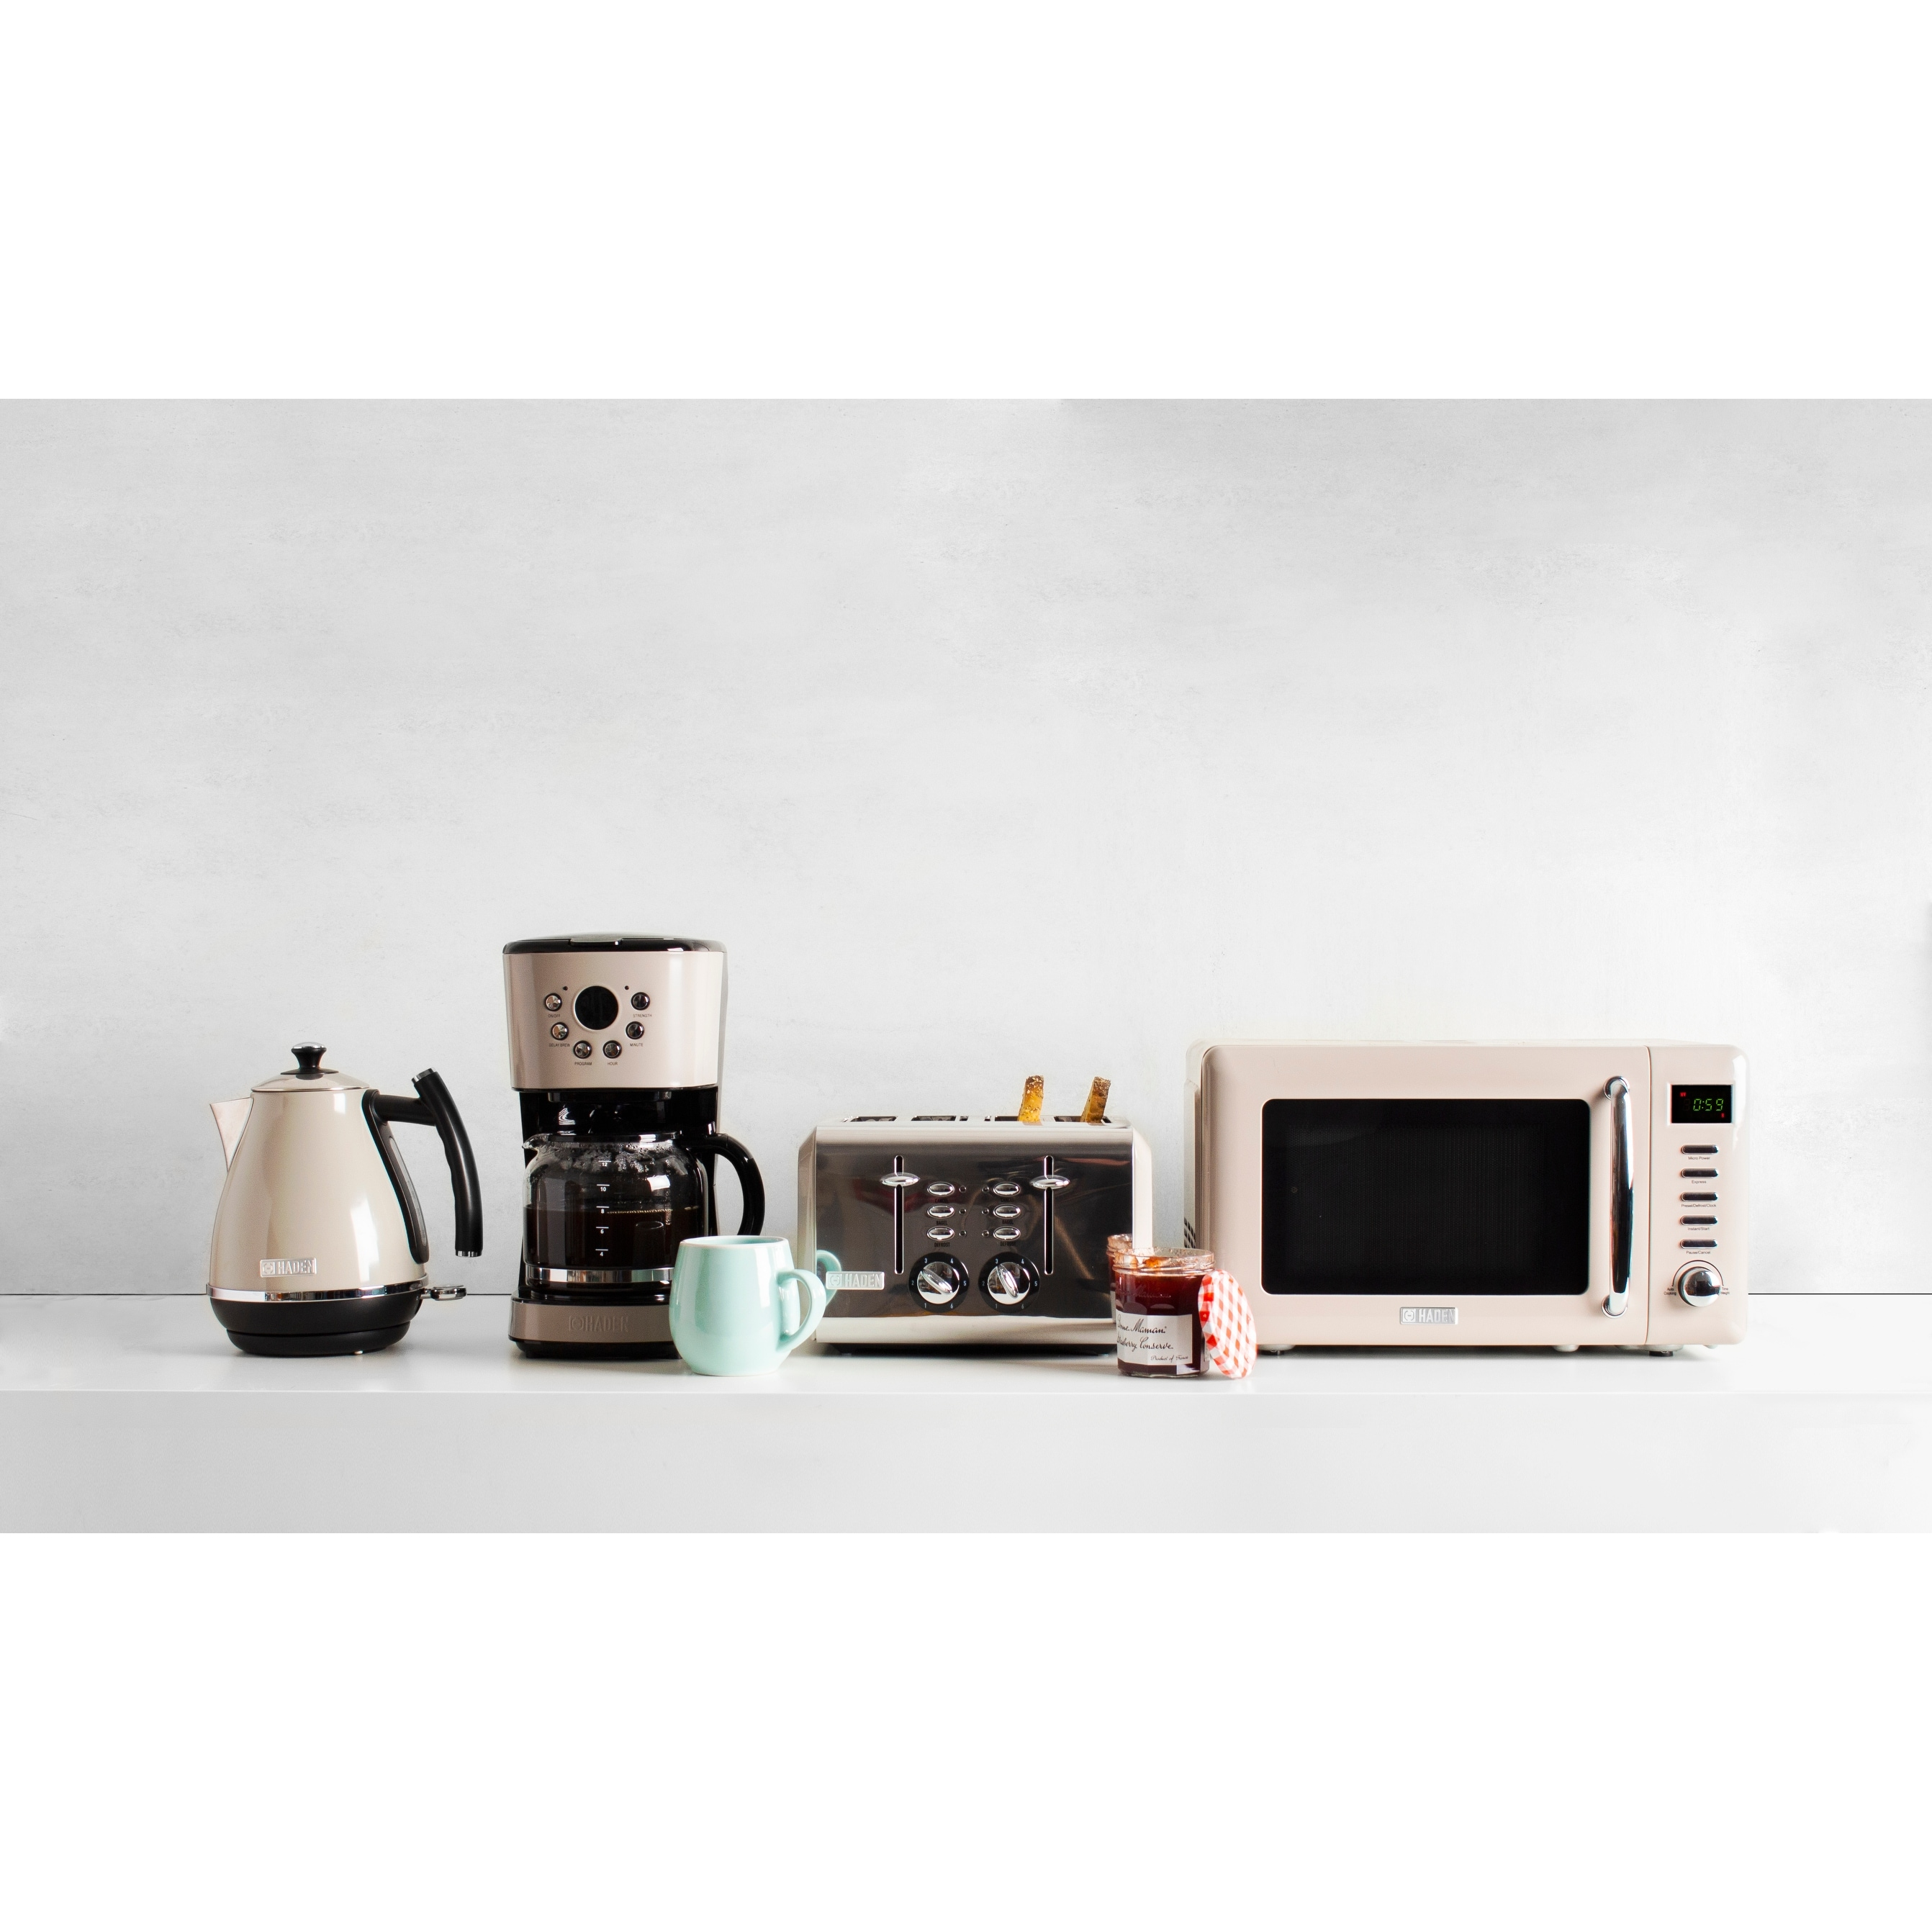 Haden Modern 12 Cup Programmable Coffee Maker With Strength Control In Putty Beige Overstock 32051594